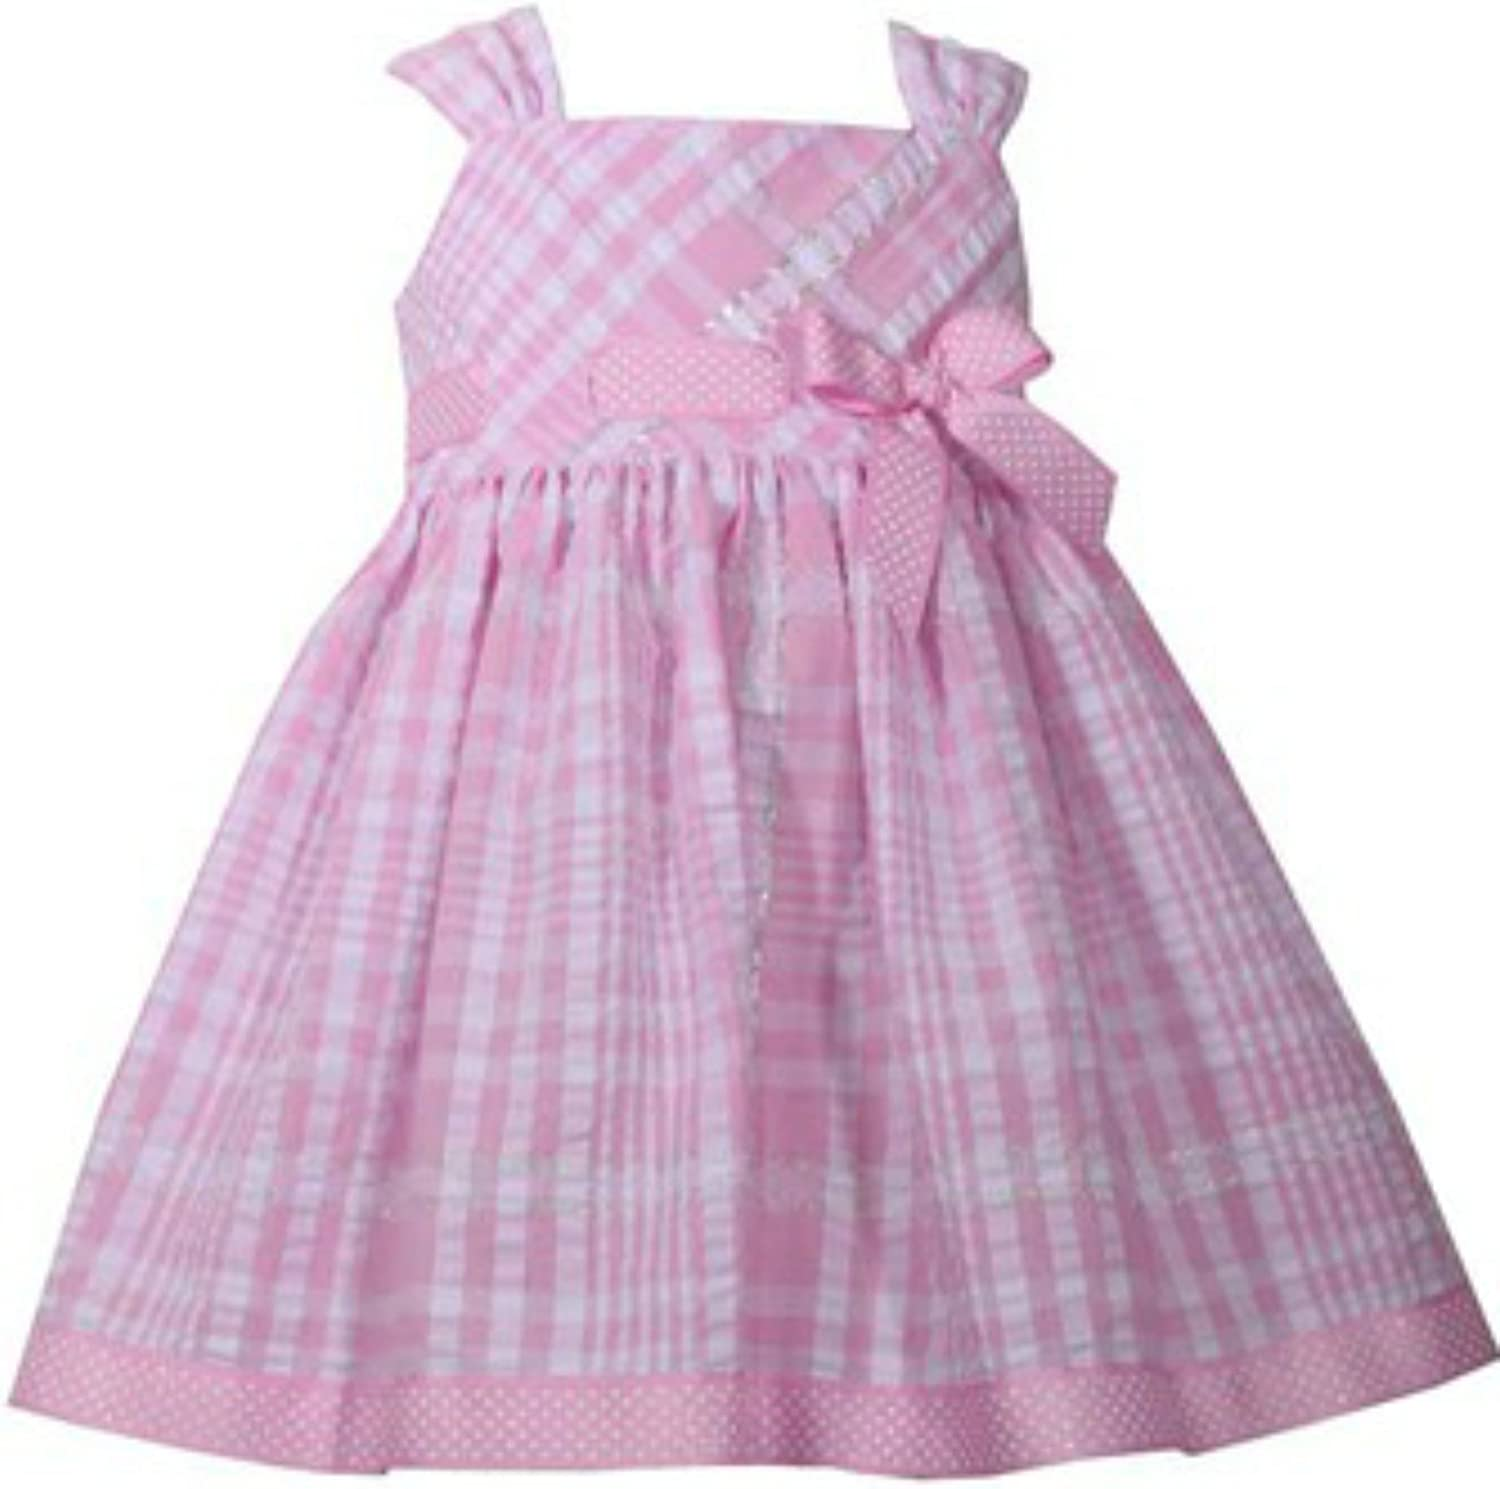 Bonnie Jean Pink and Metallic Seersucker A-Line Dress and Bloomer